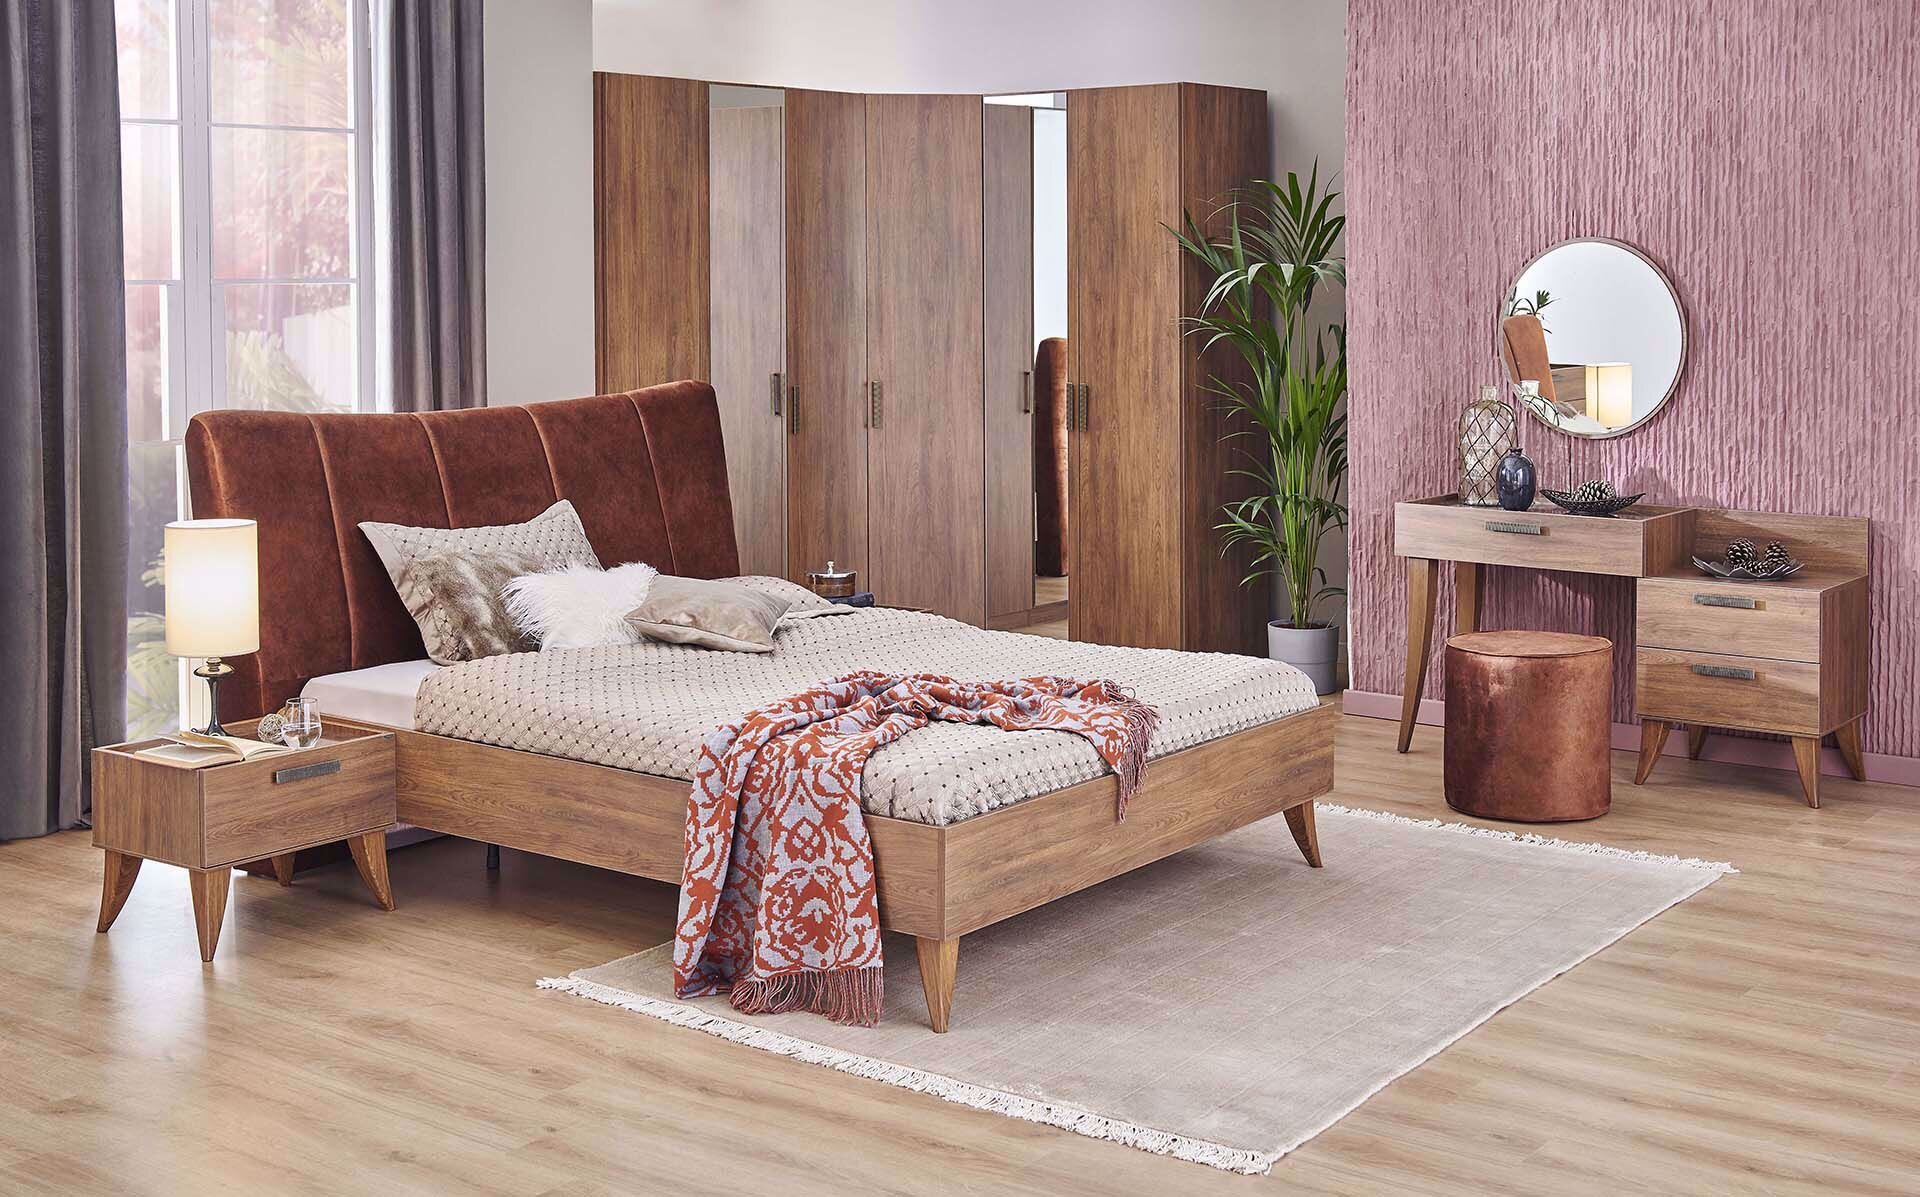 Claudia Bedstead (with Base) 160*200cm (Incl. Headboard)